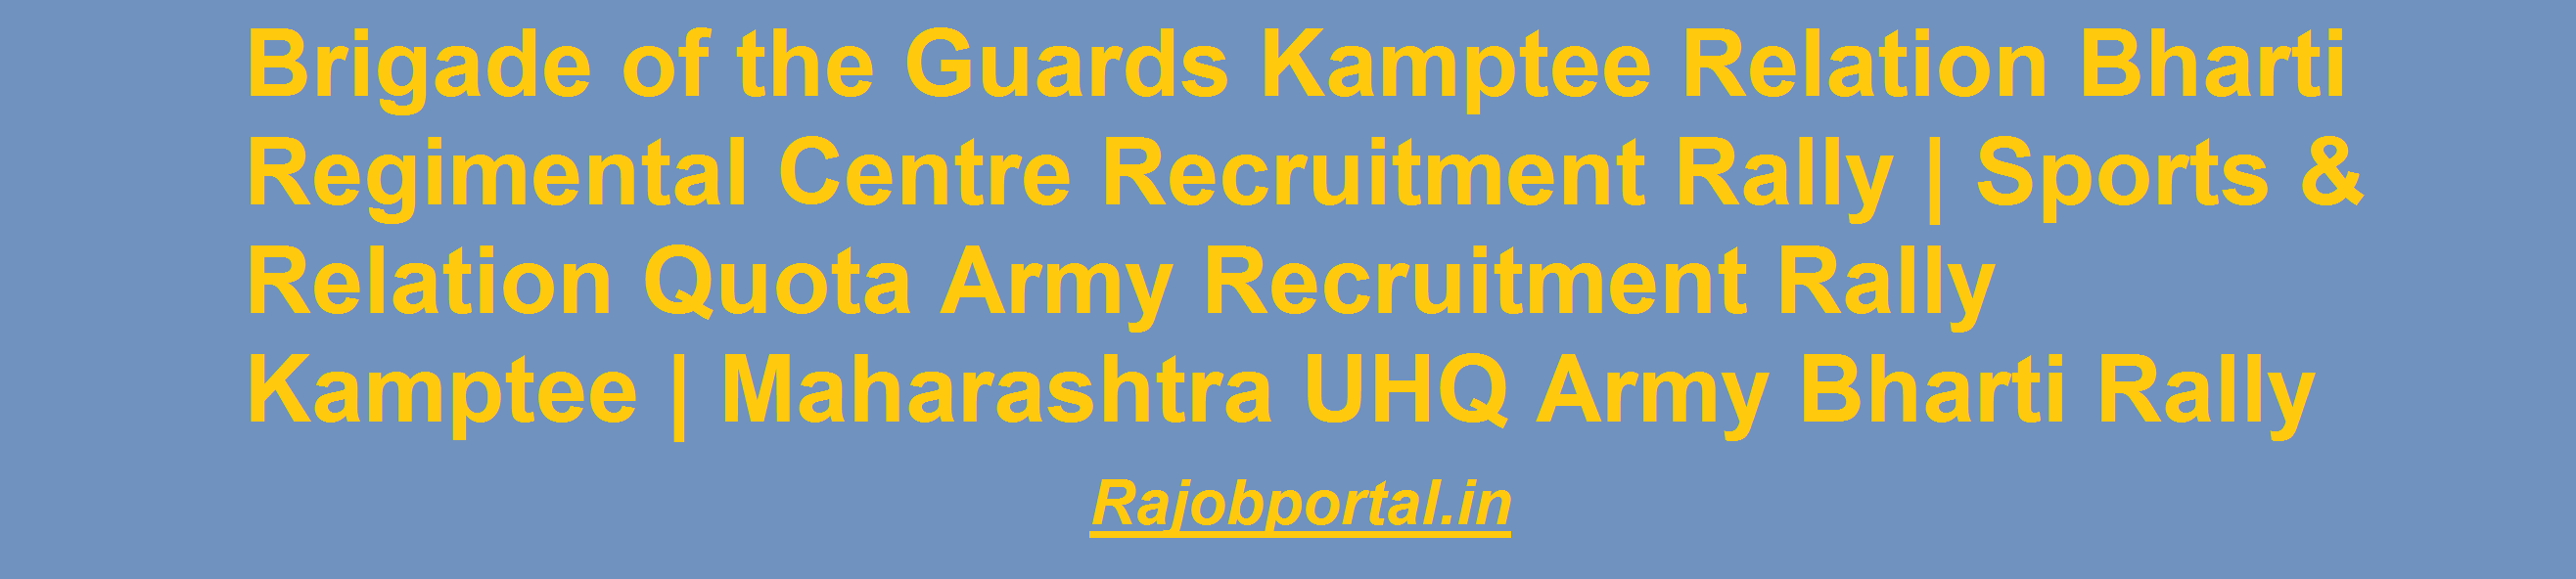 Brigade of the Guards Kamptee Relation Bharti 2019